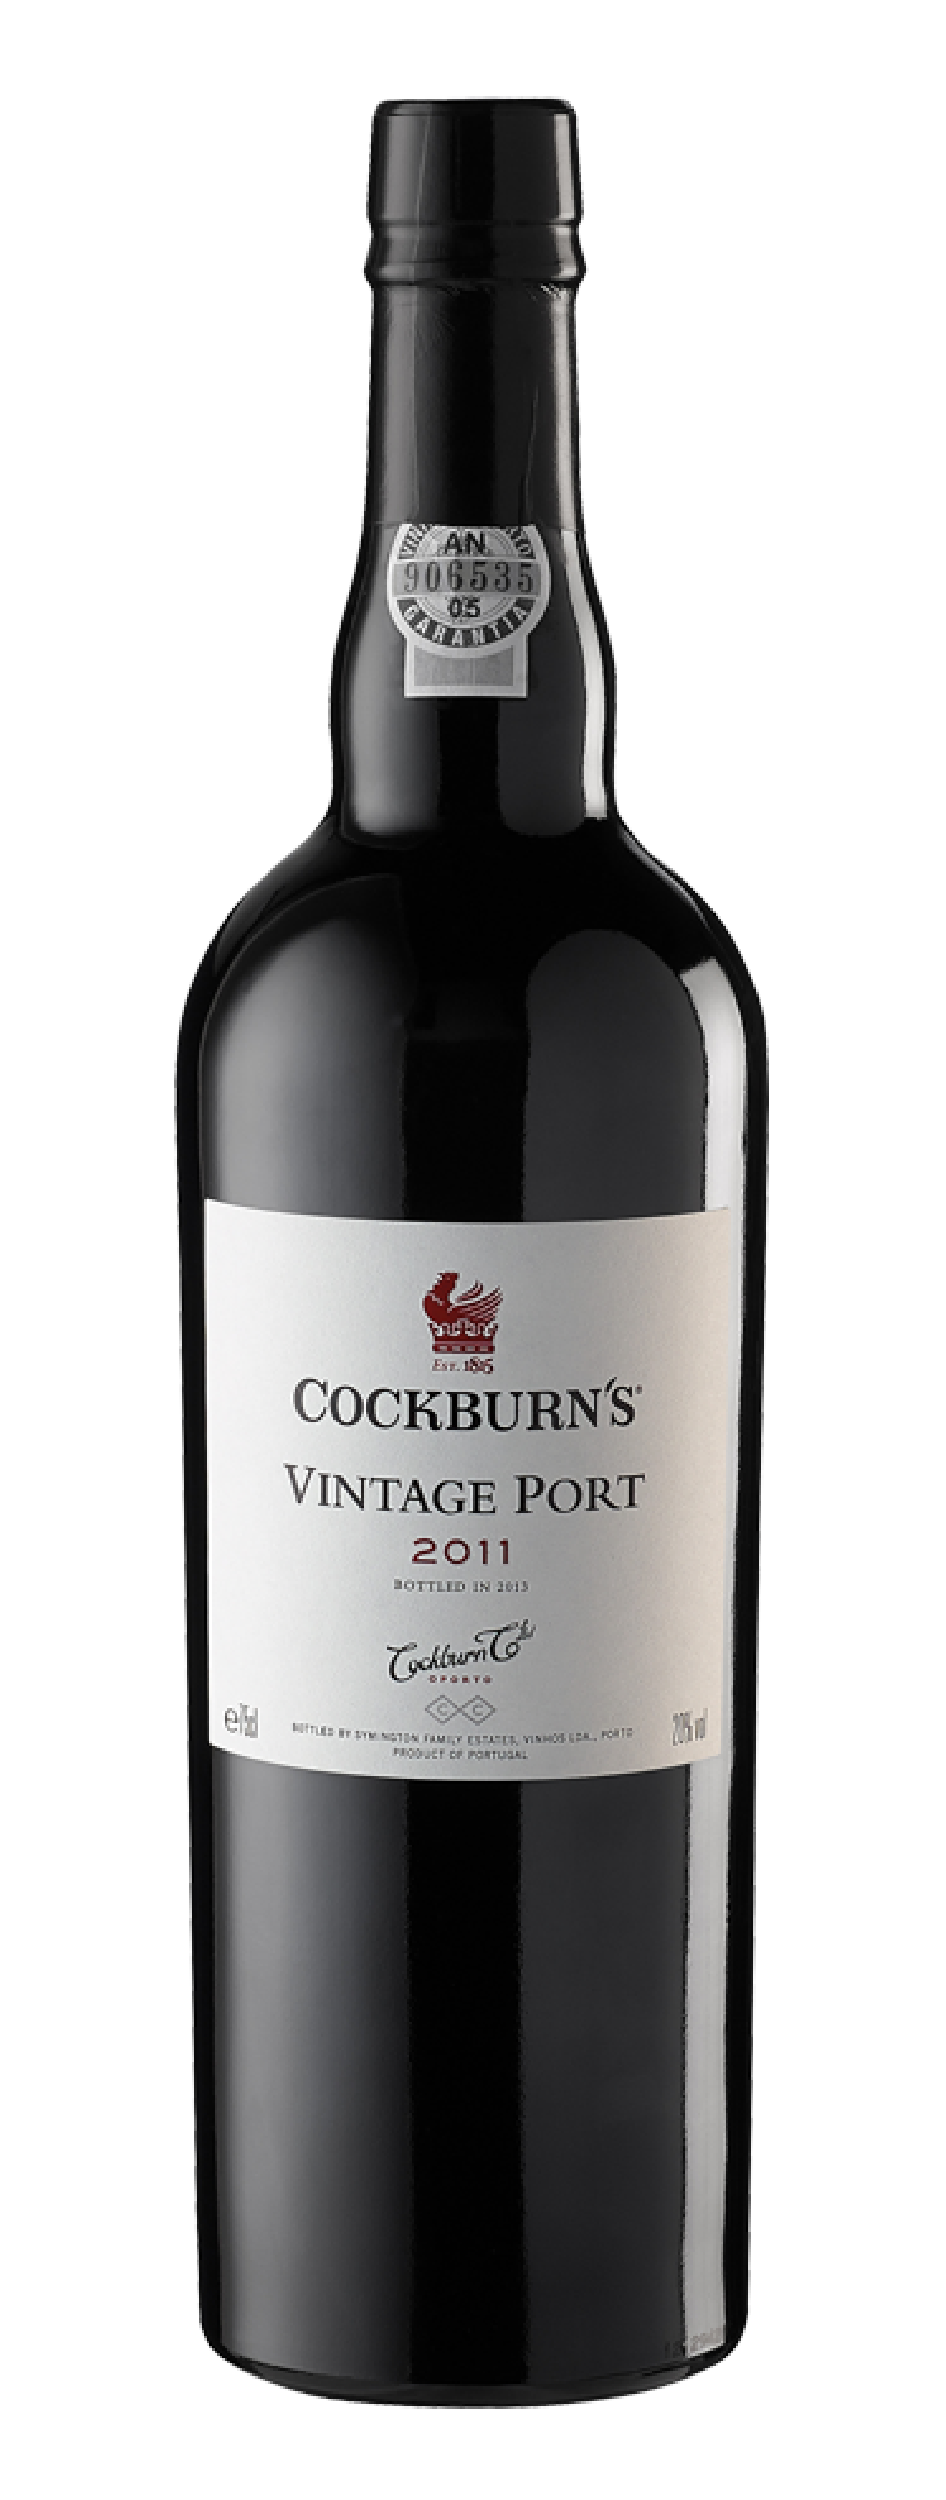 Product Image for COCKBURN'S VINTAGE PORT 2011